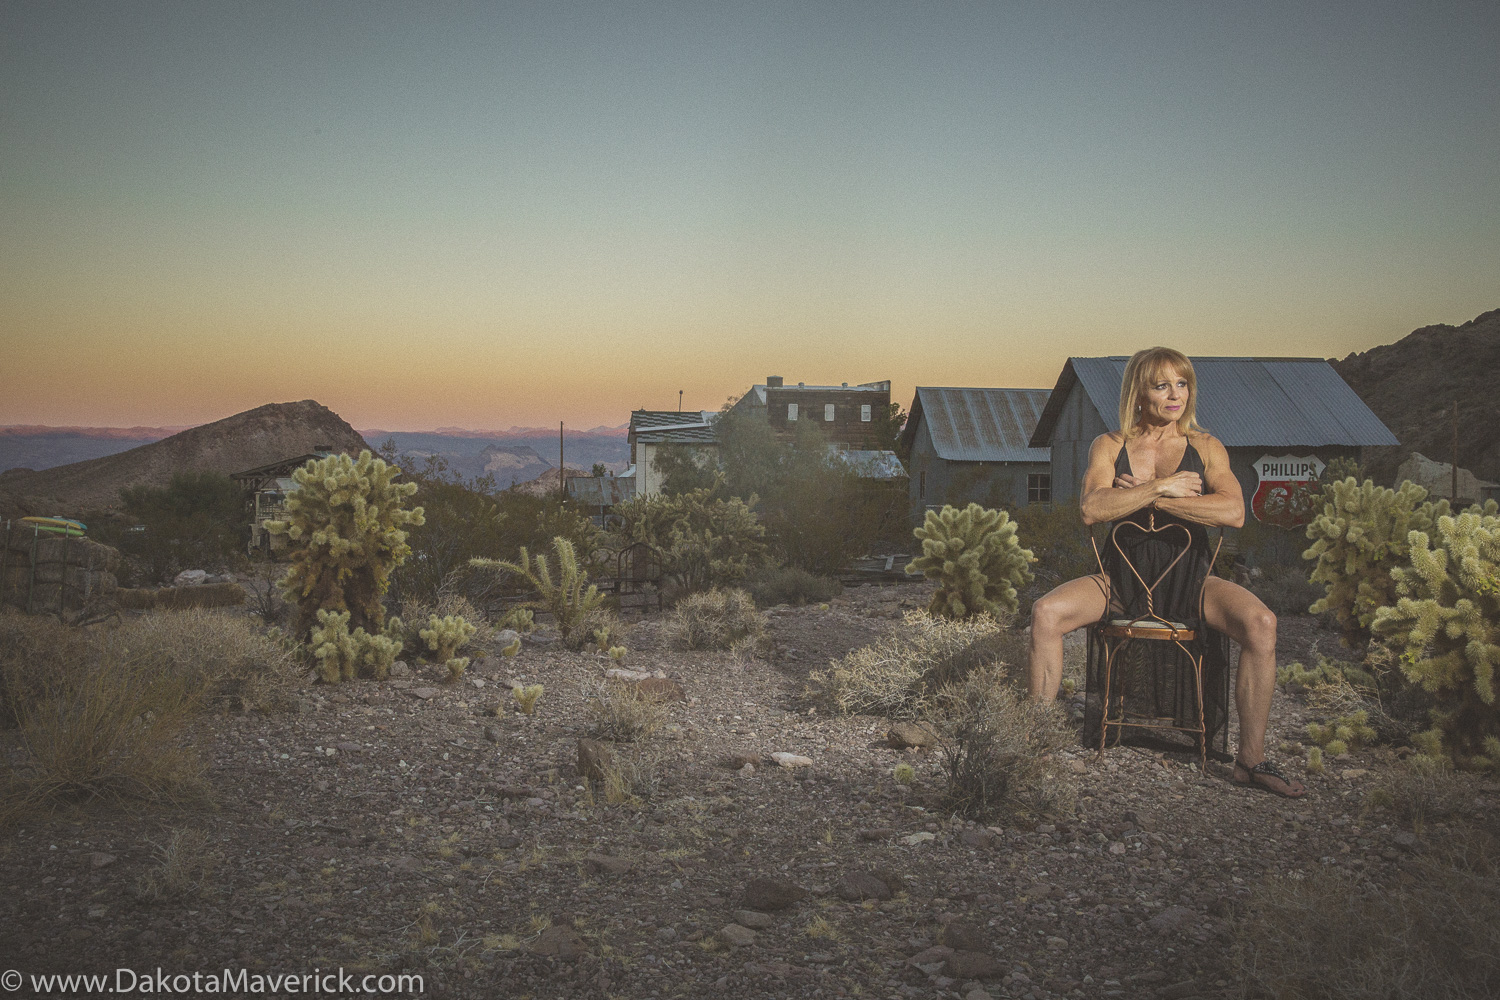 Vancouver Fitness Photographer - Nelson Ghost Town, Nevada - Fashion Fitness Shoot (15 of 40).jpg